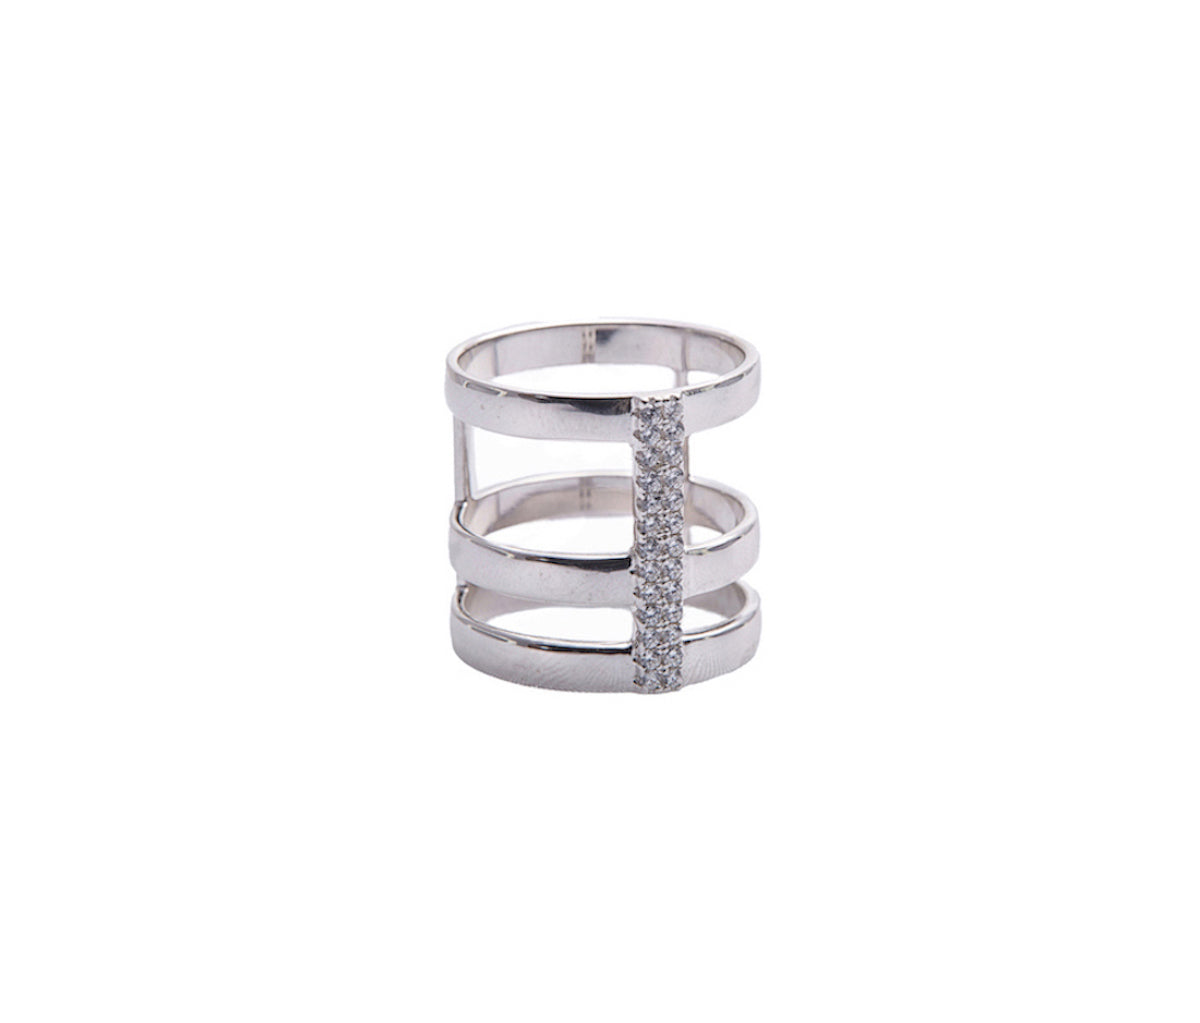 Silver Three-Band Connected Statement Ring